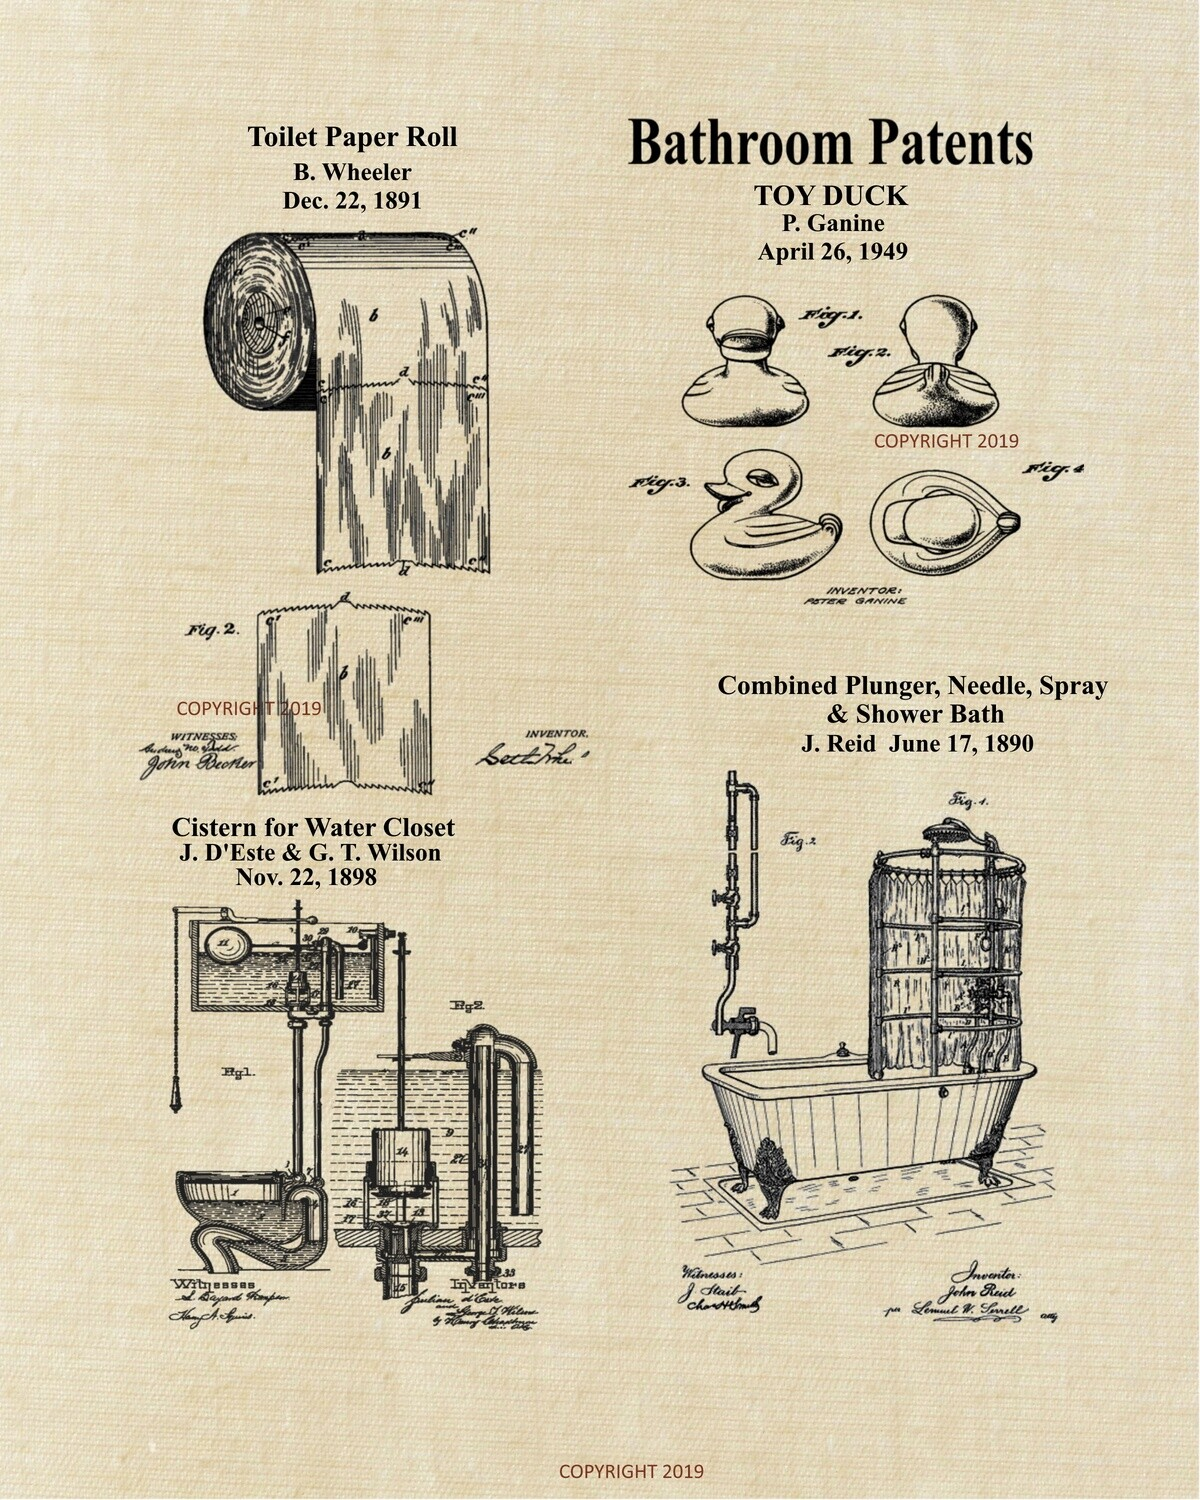 Bathroom Vintage Patent Unframed 8x10 - Aged Linen Look - Ready for Your Frame